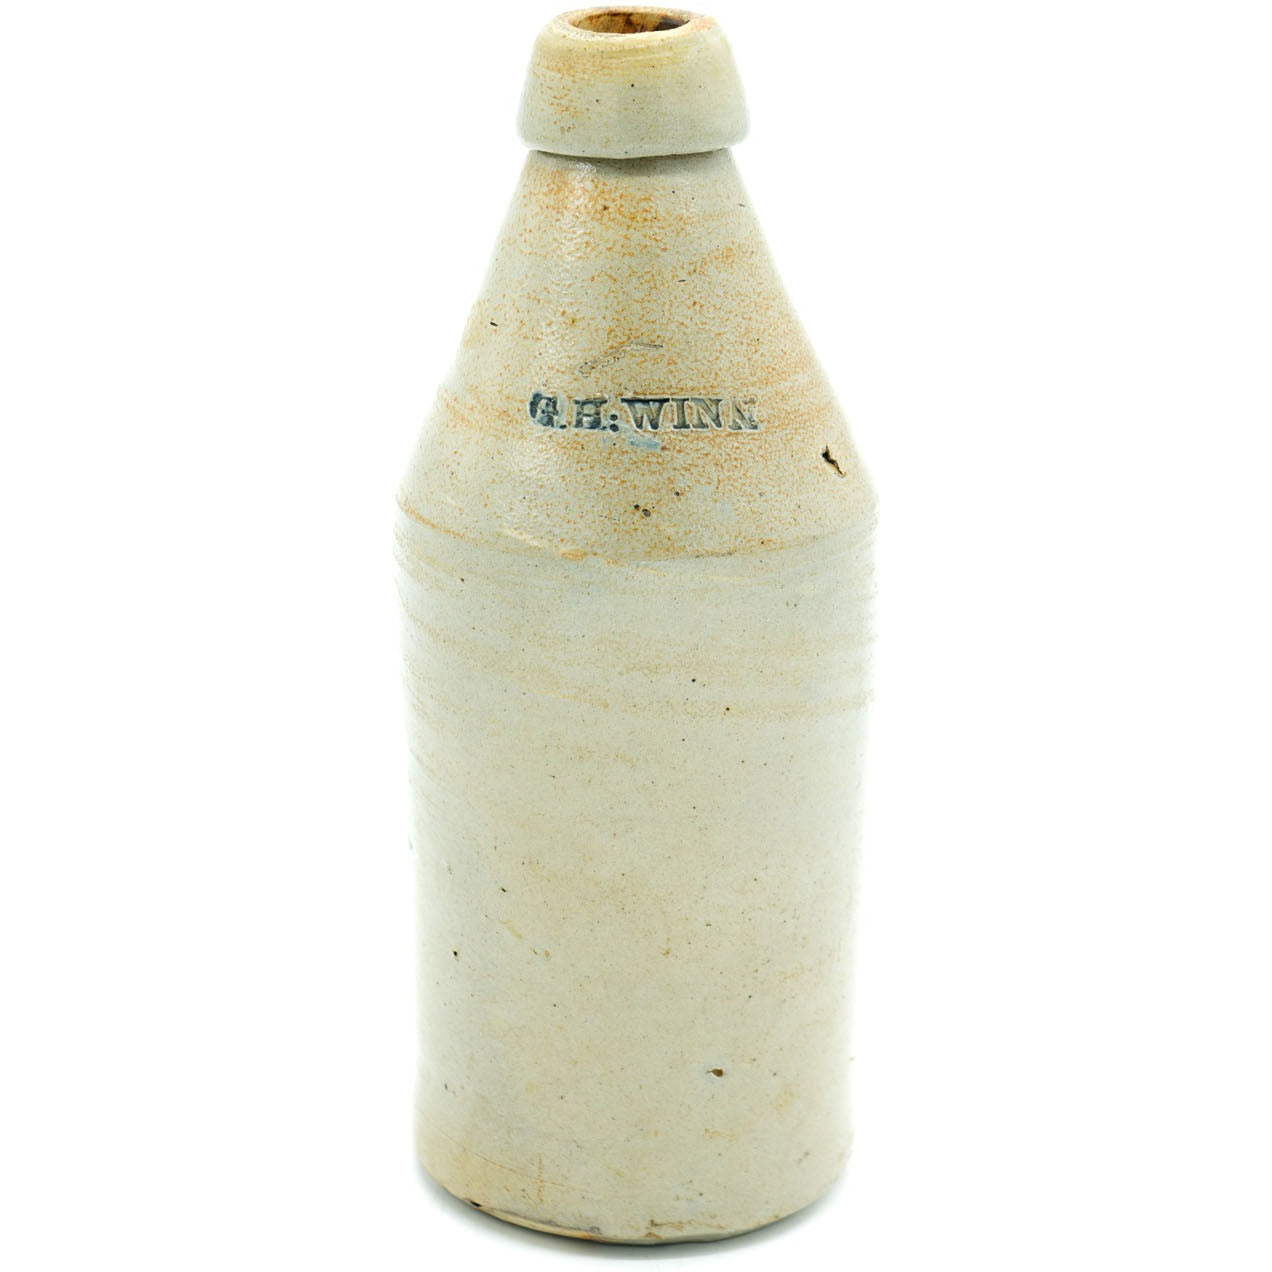 G.H: Winn Stoneware Beer Bottle